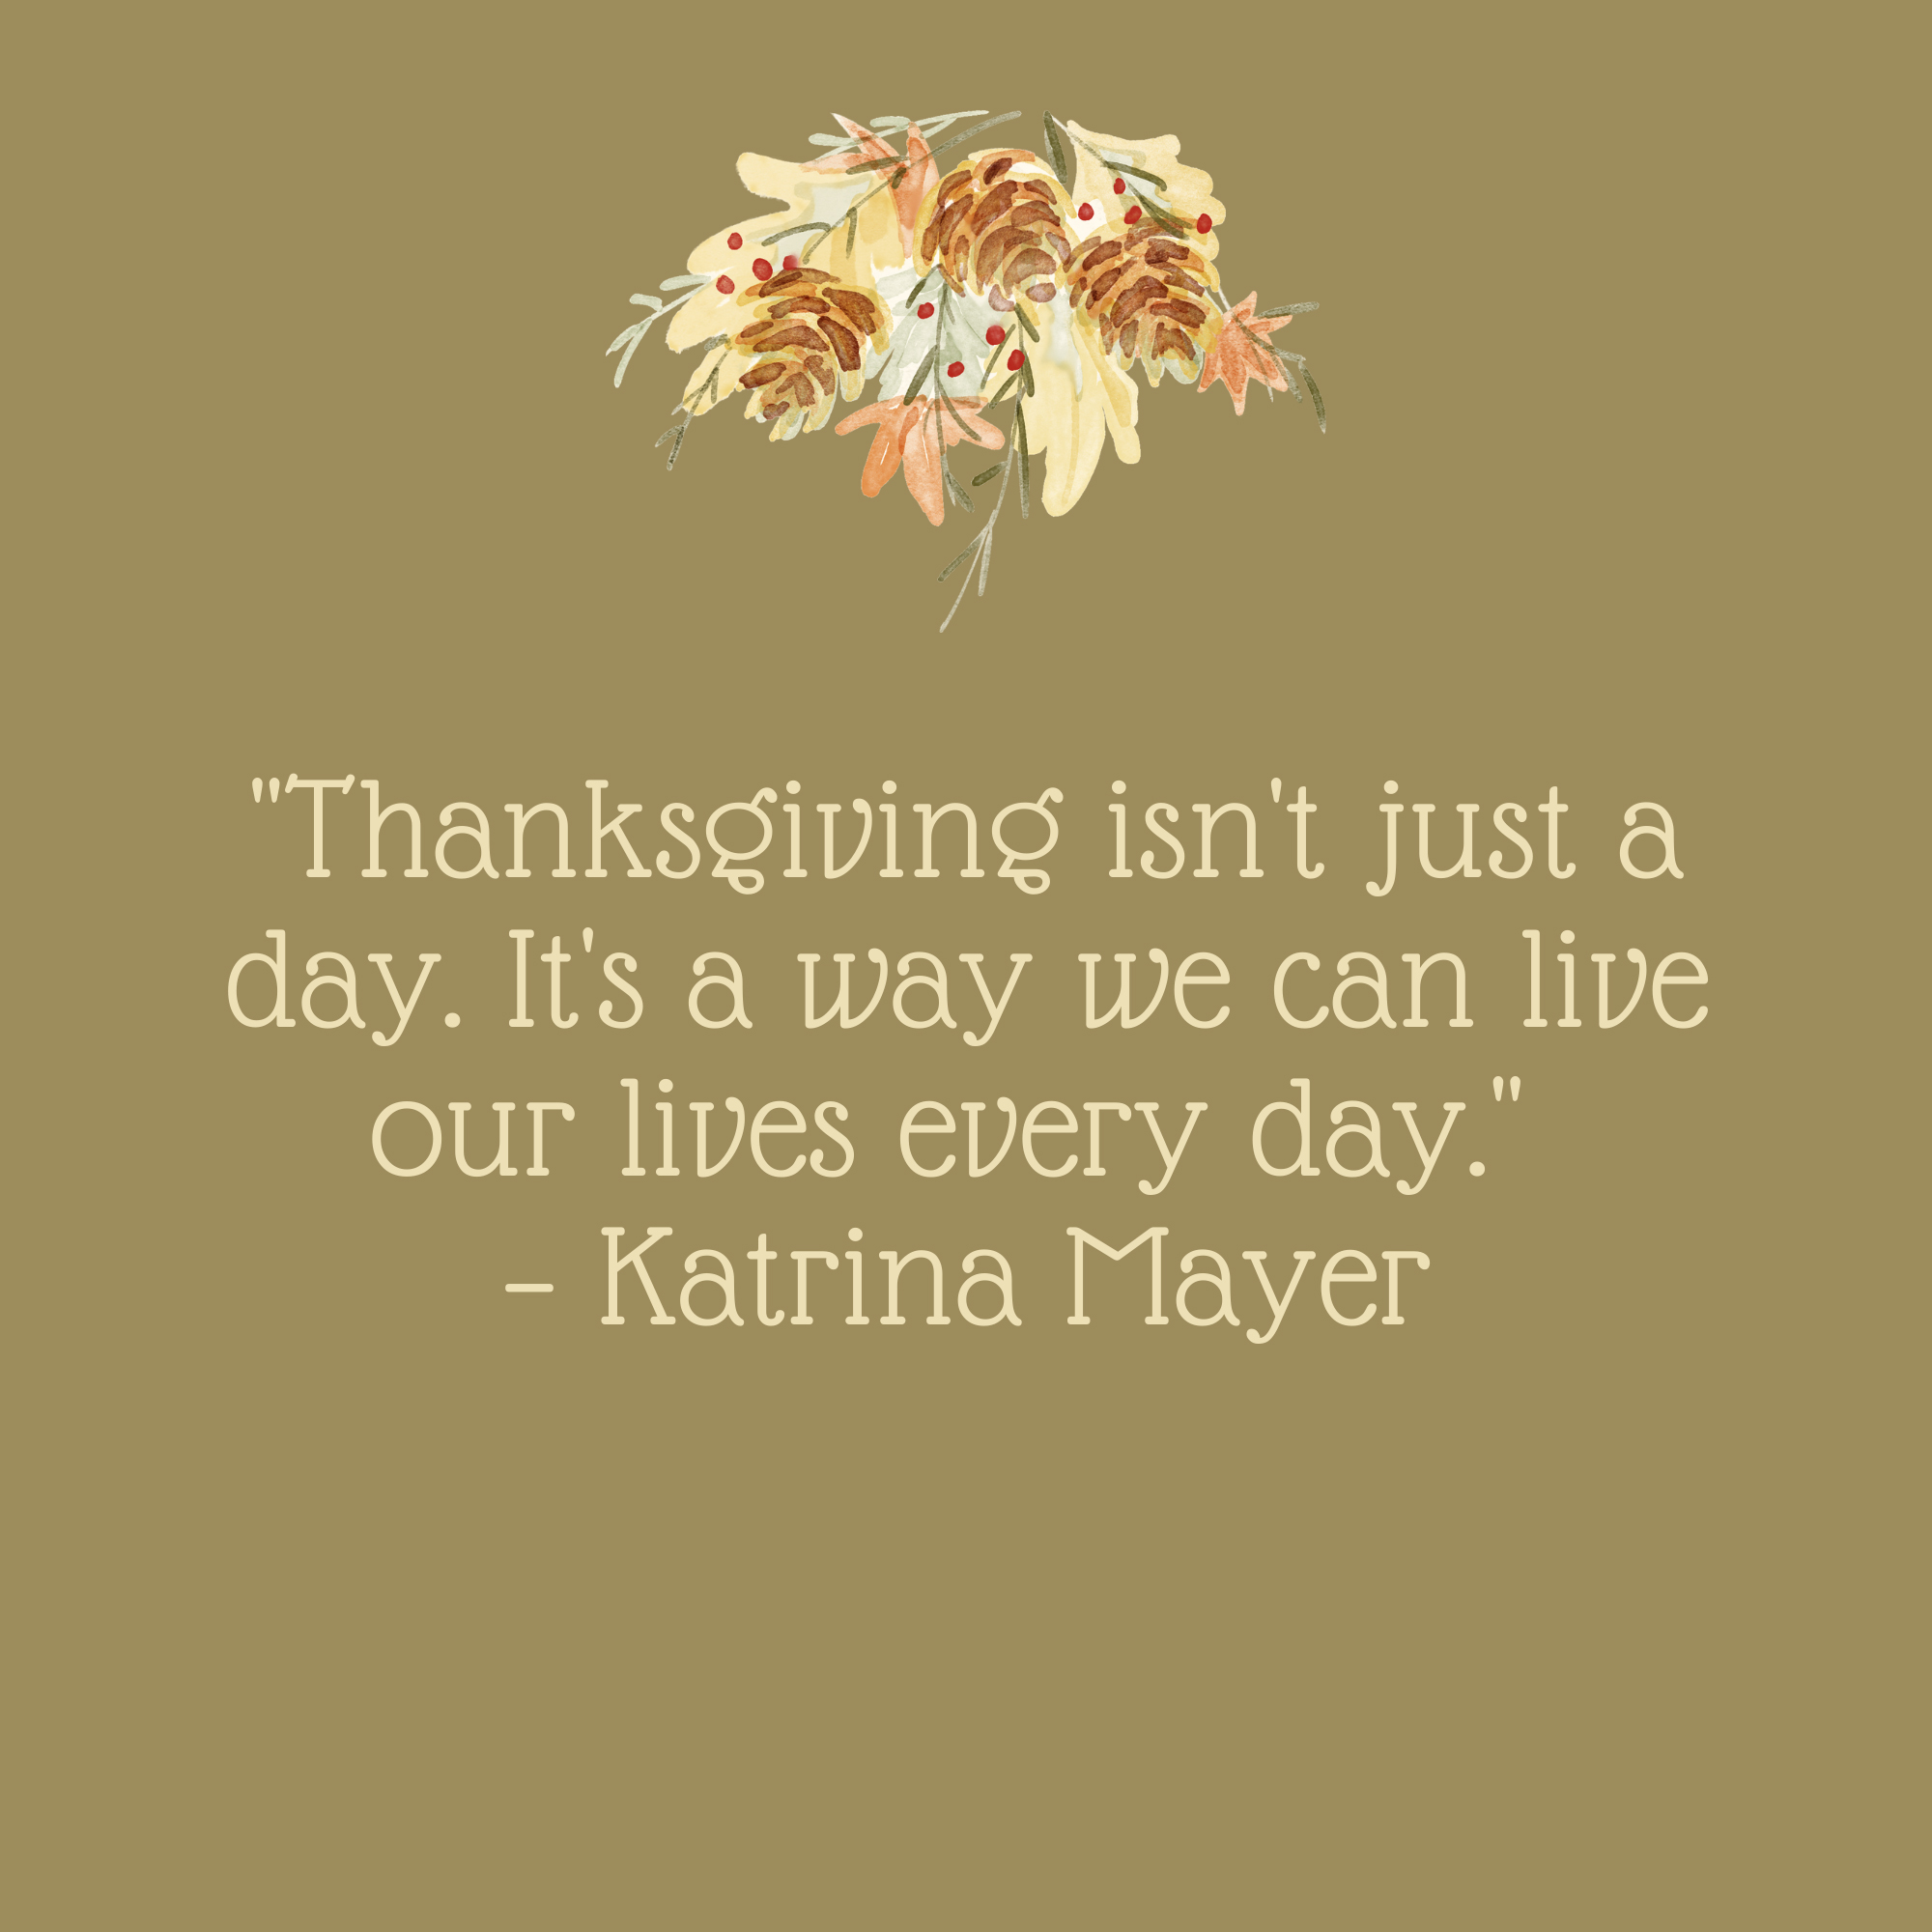 Thanksgiving Isn't Just a Day Quote